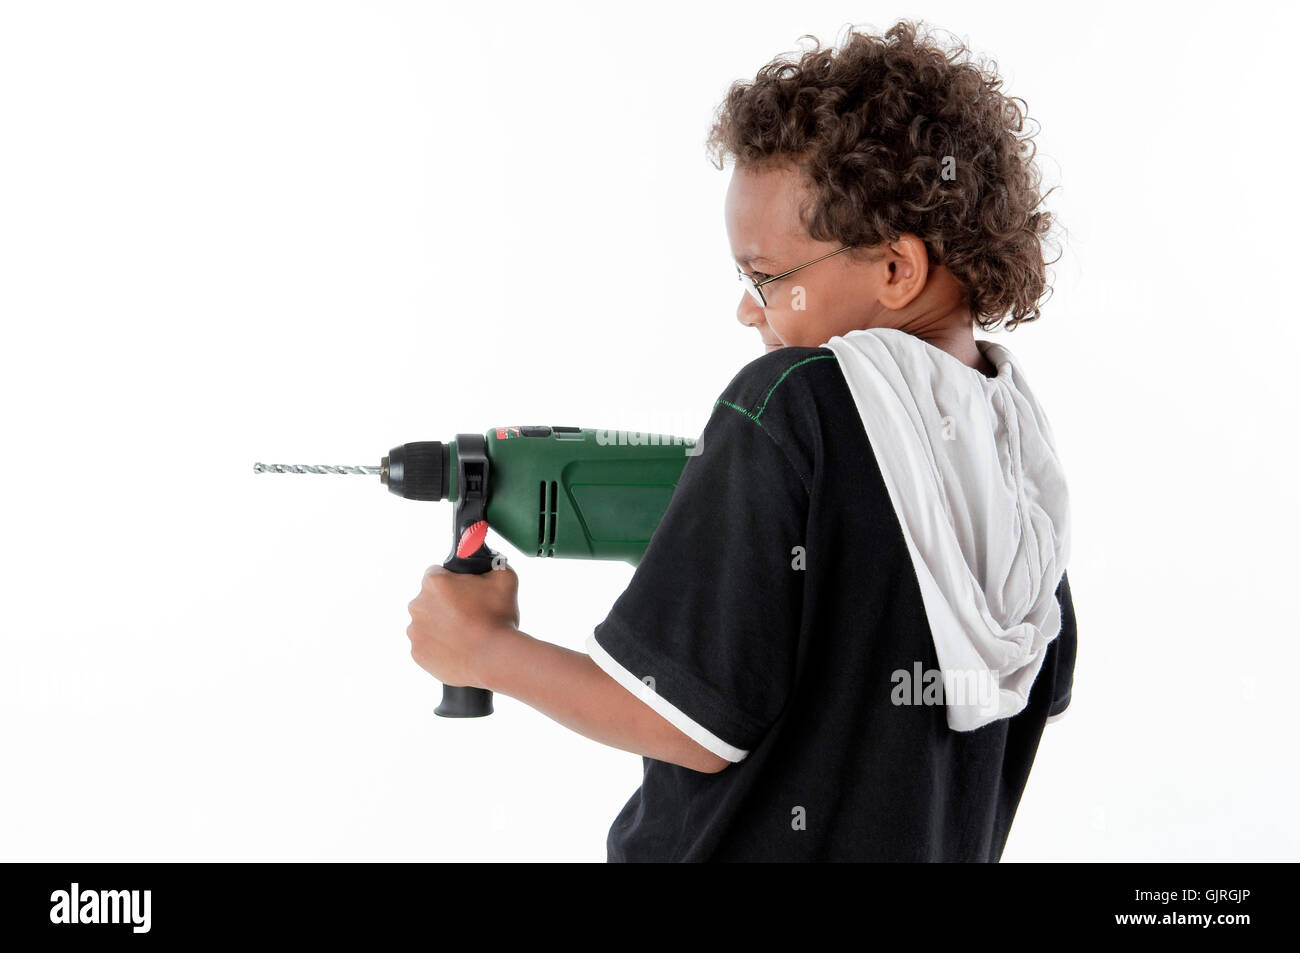 boy with drilling machine - Stock Image